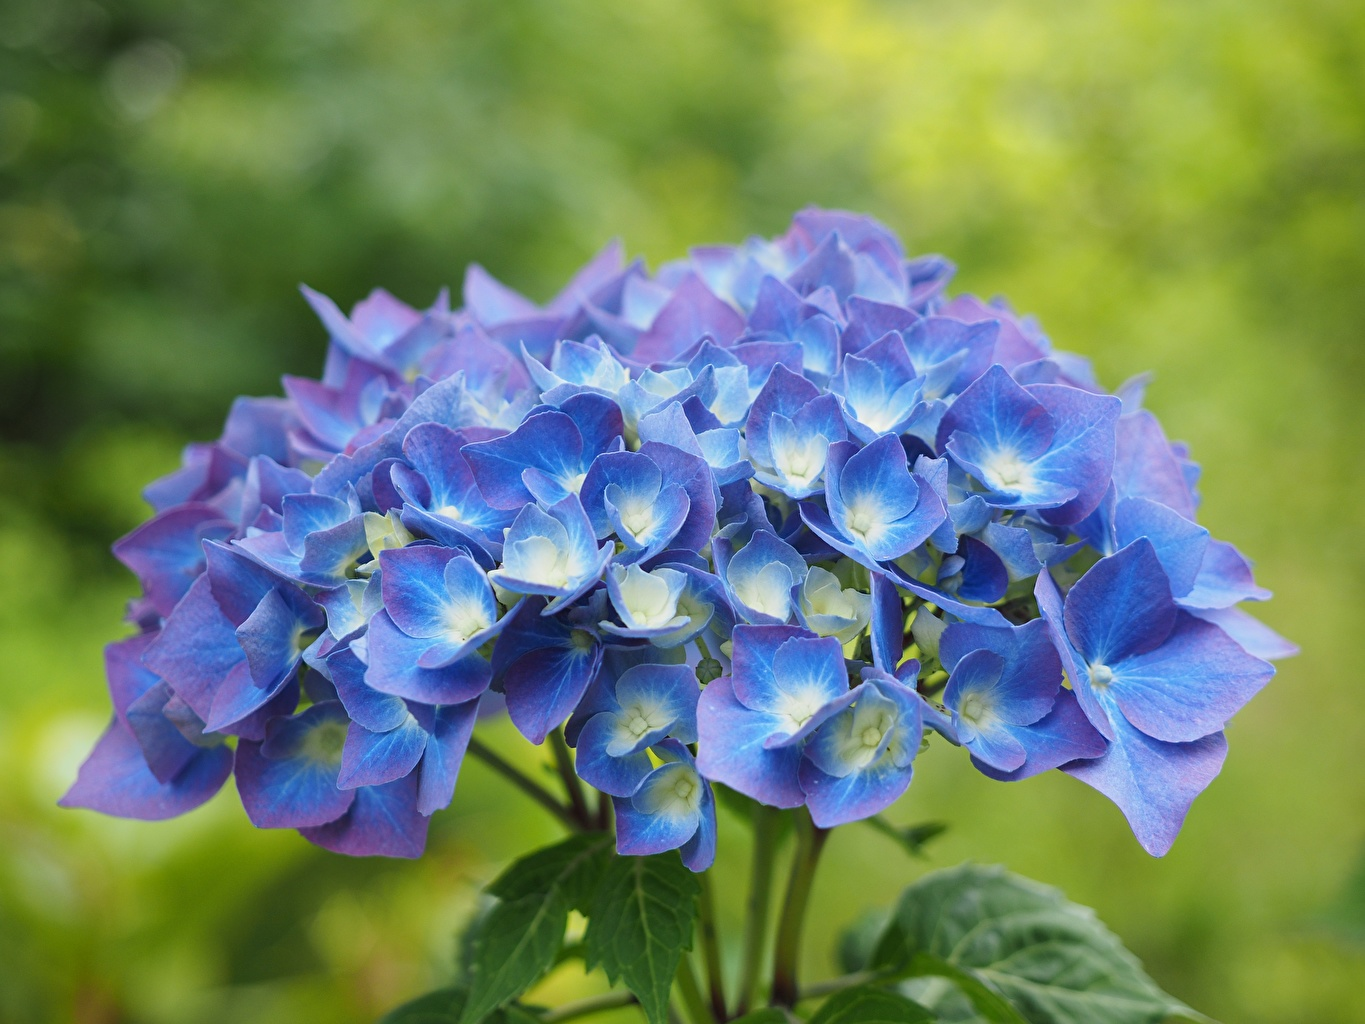 Image Bokeh Blue Flowers Hydrangea Closeup blurred background flower